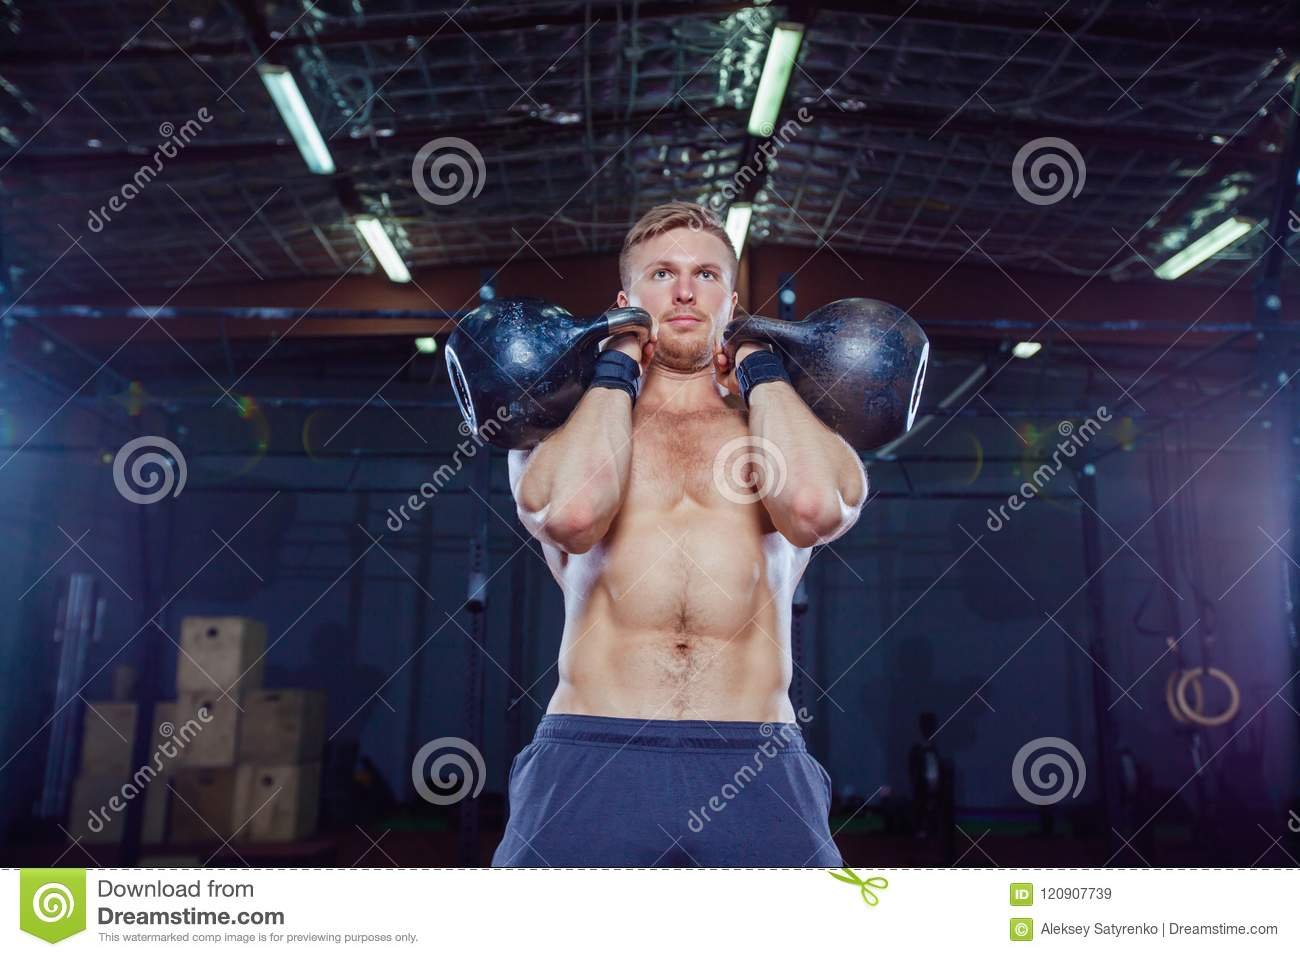 Kettlebell Bodybuilding Cross Training Fit Fitness Man Doing A Weight Training By Lifting